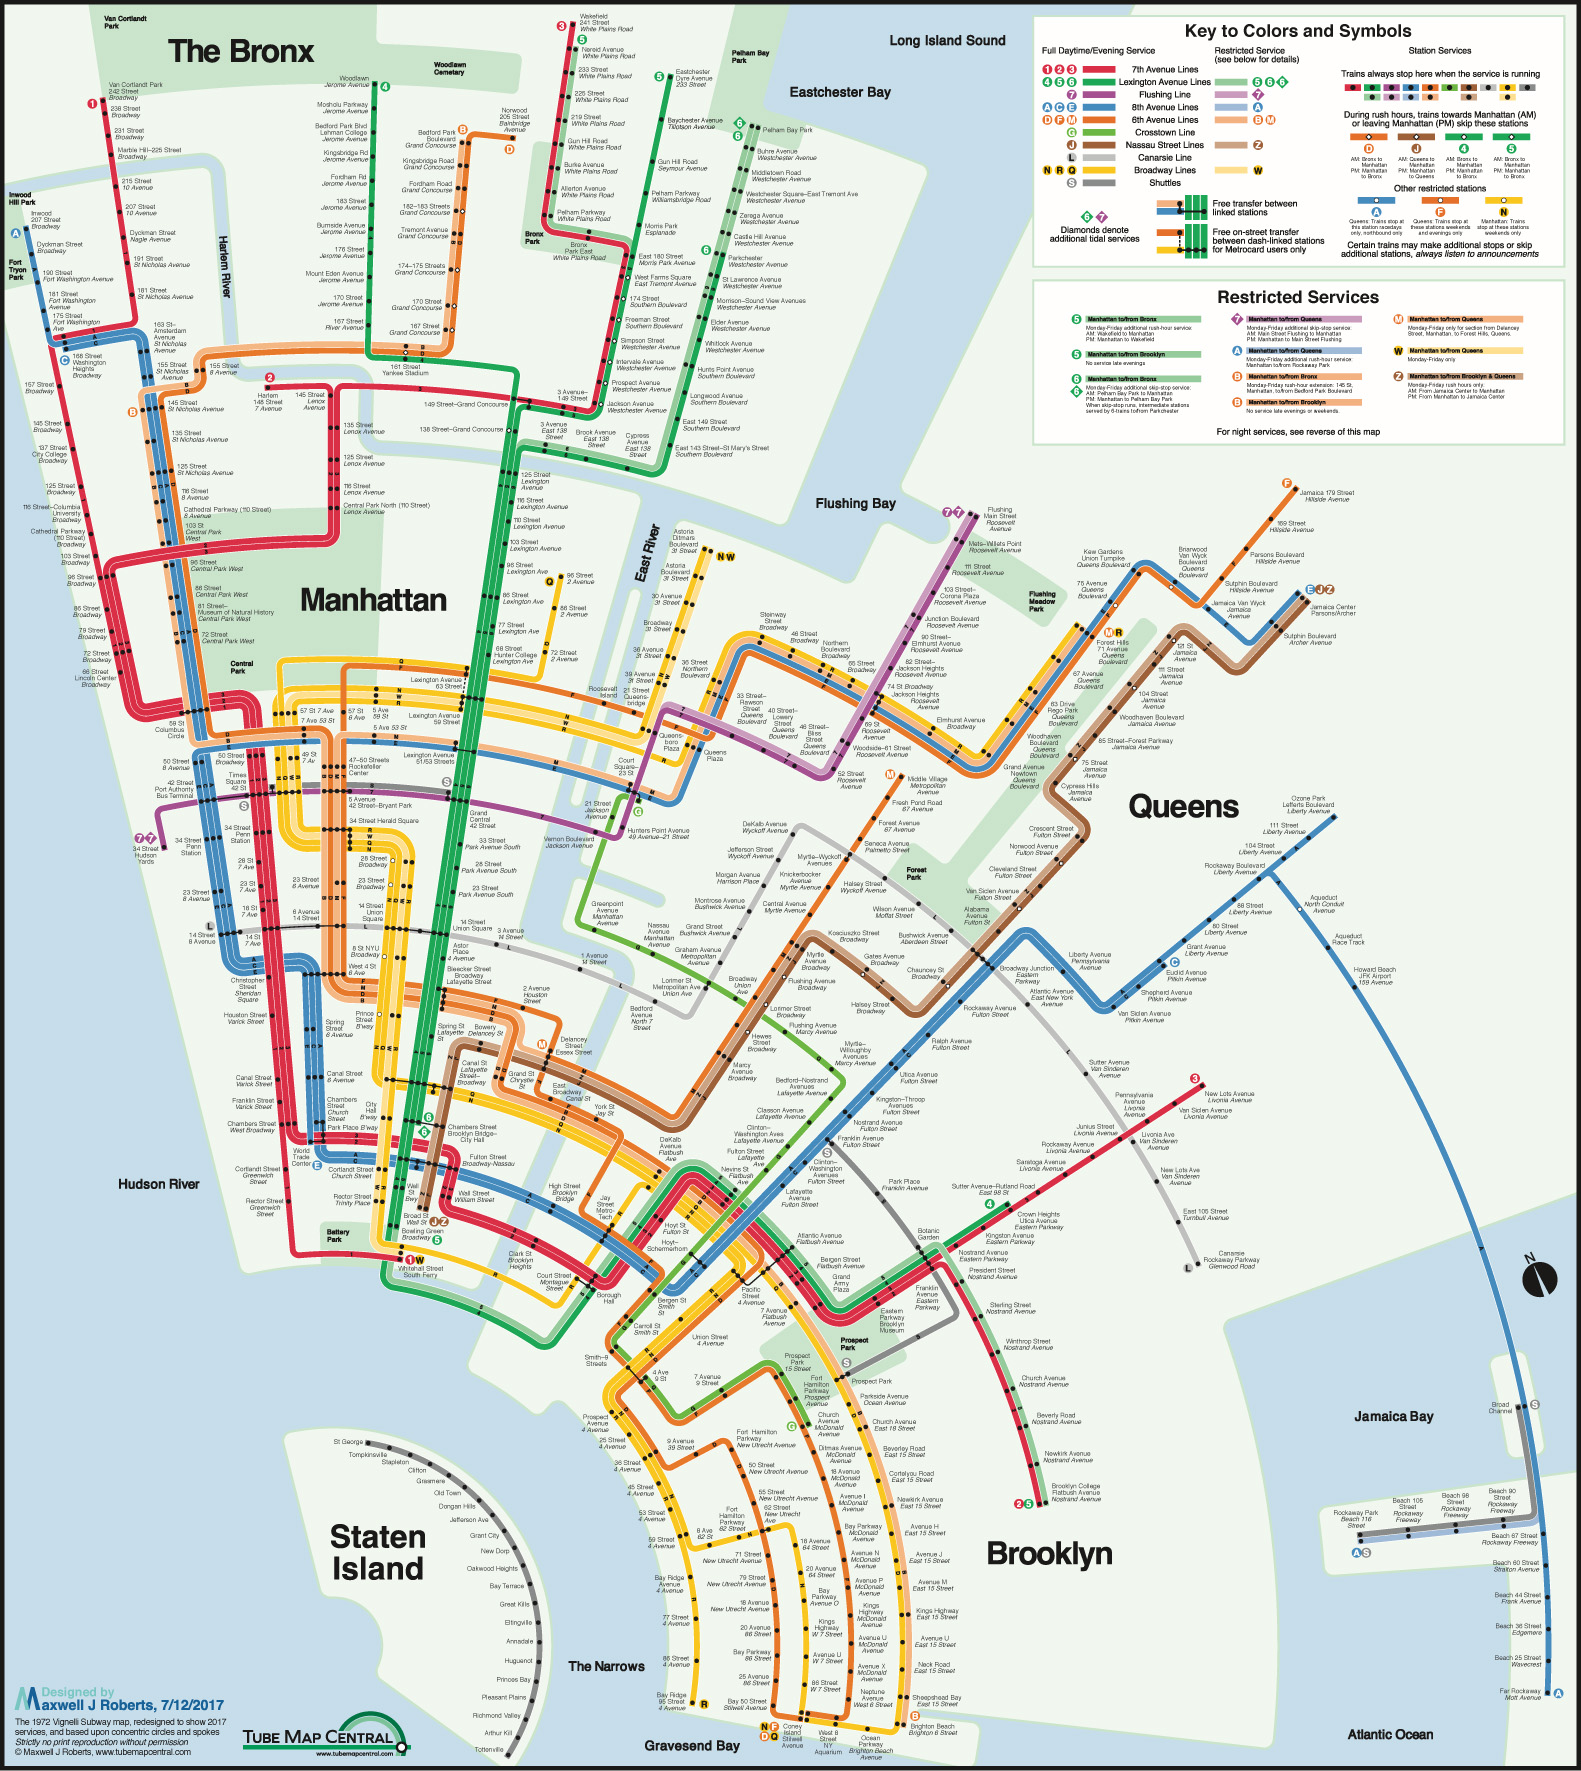 Transit Map World Cup: Elite Eight, the Rest | Theodore Ditsek